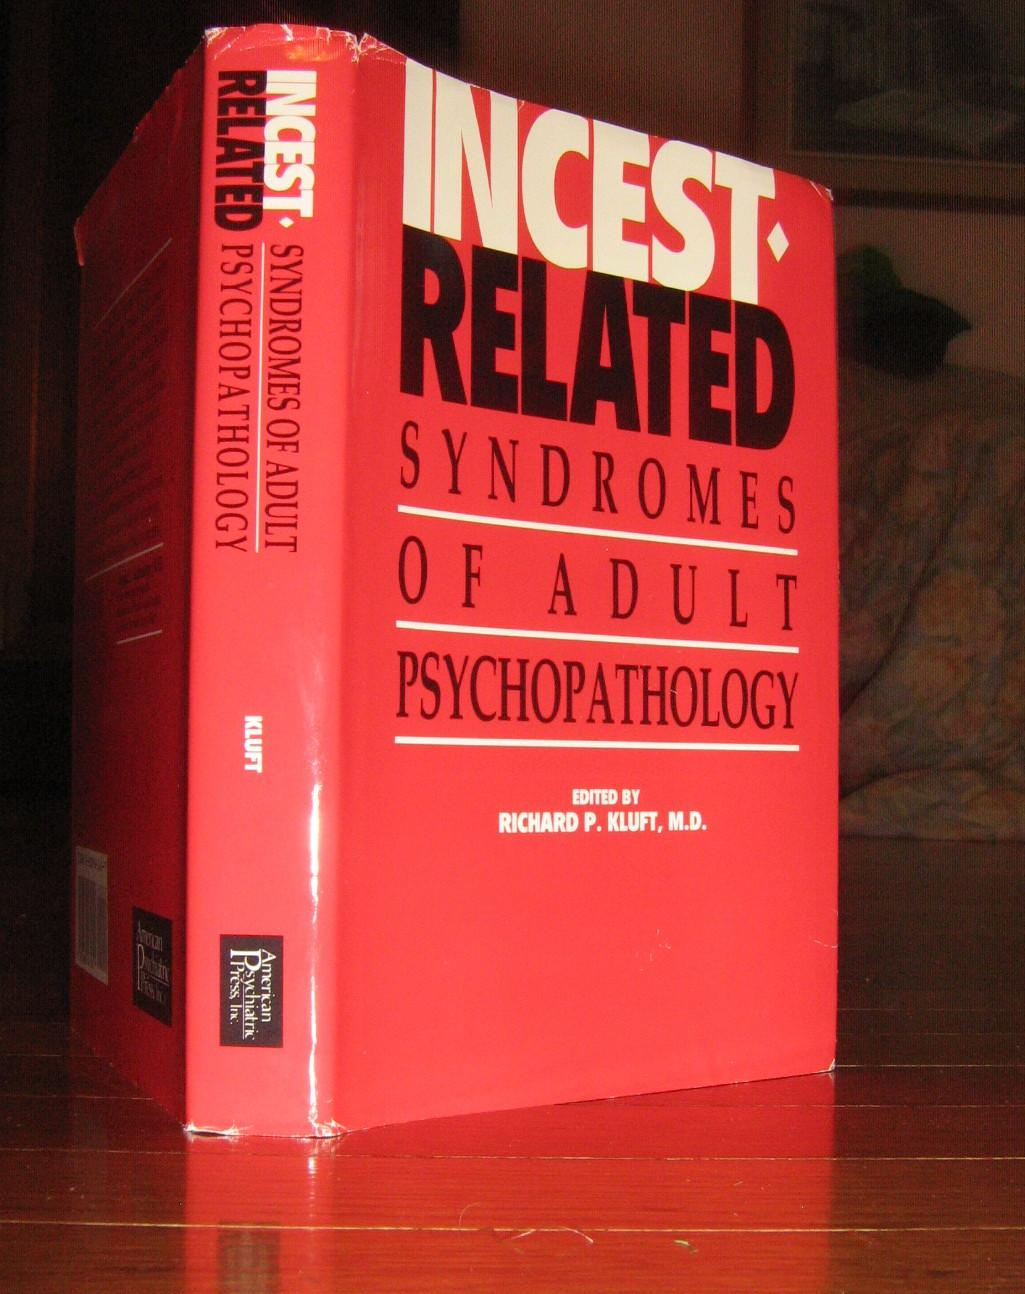 Incest-Related Syndromes of Adult Psychopathology